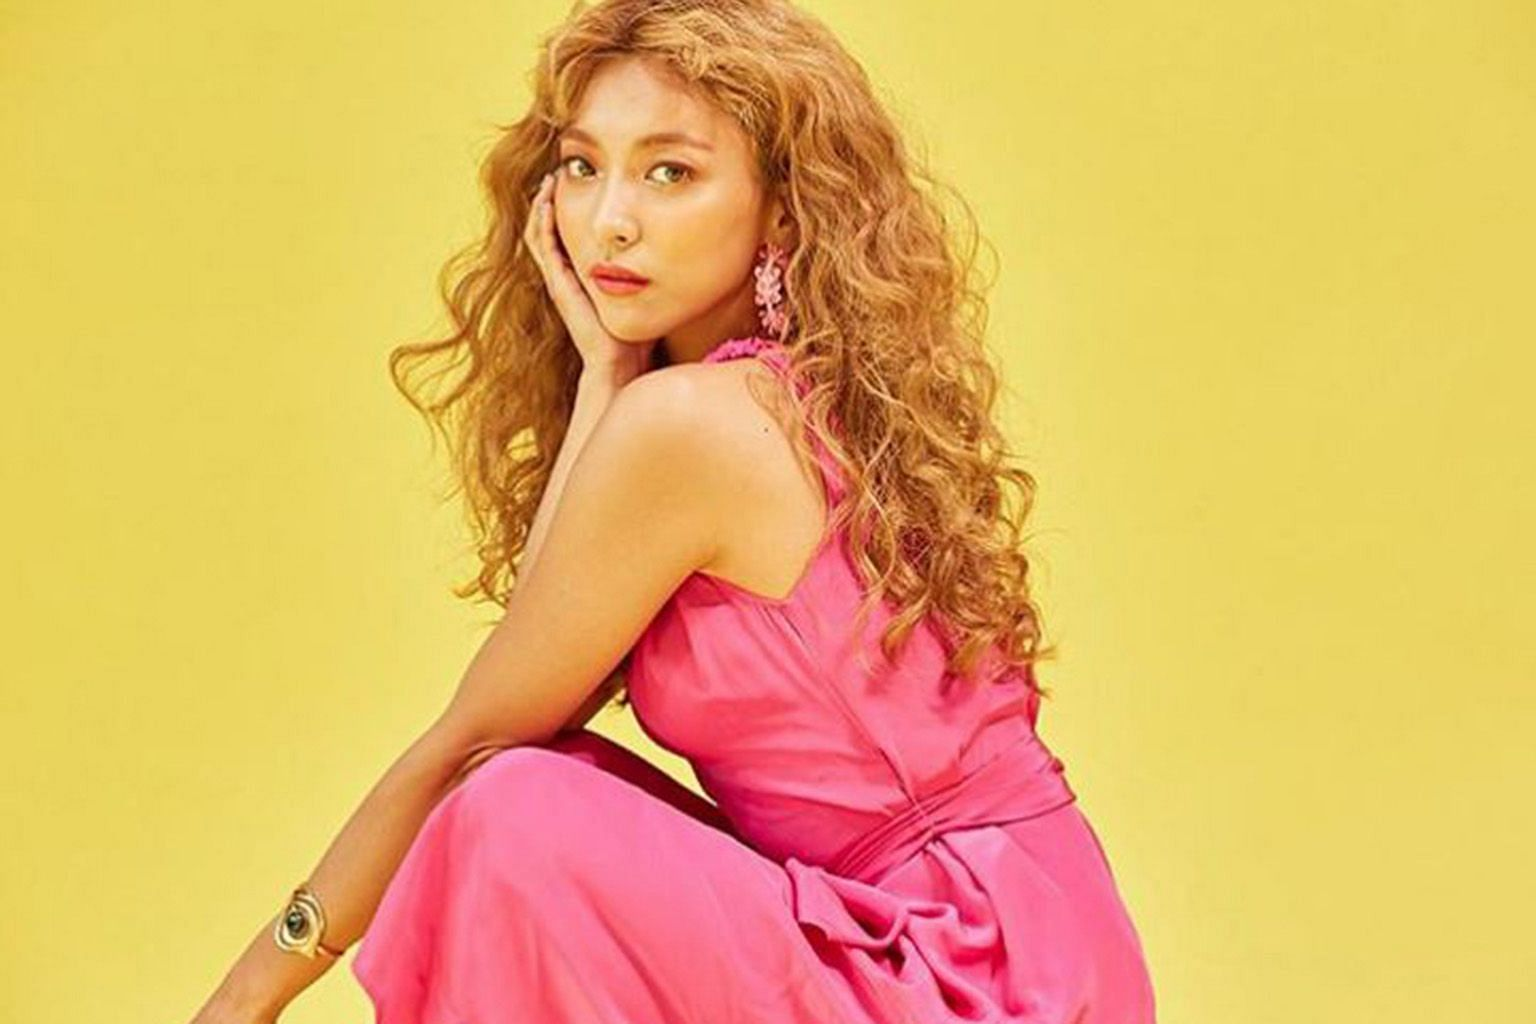 K-pop idol Luna (above) revealed that she suffers from depression and panic disorder.